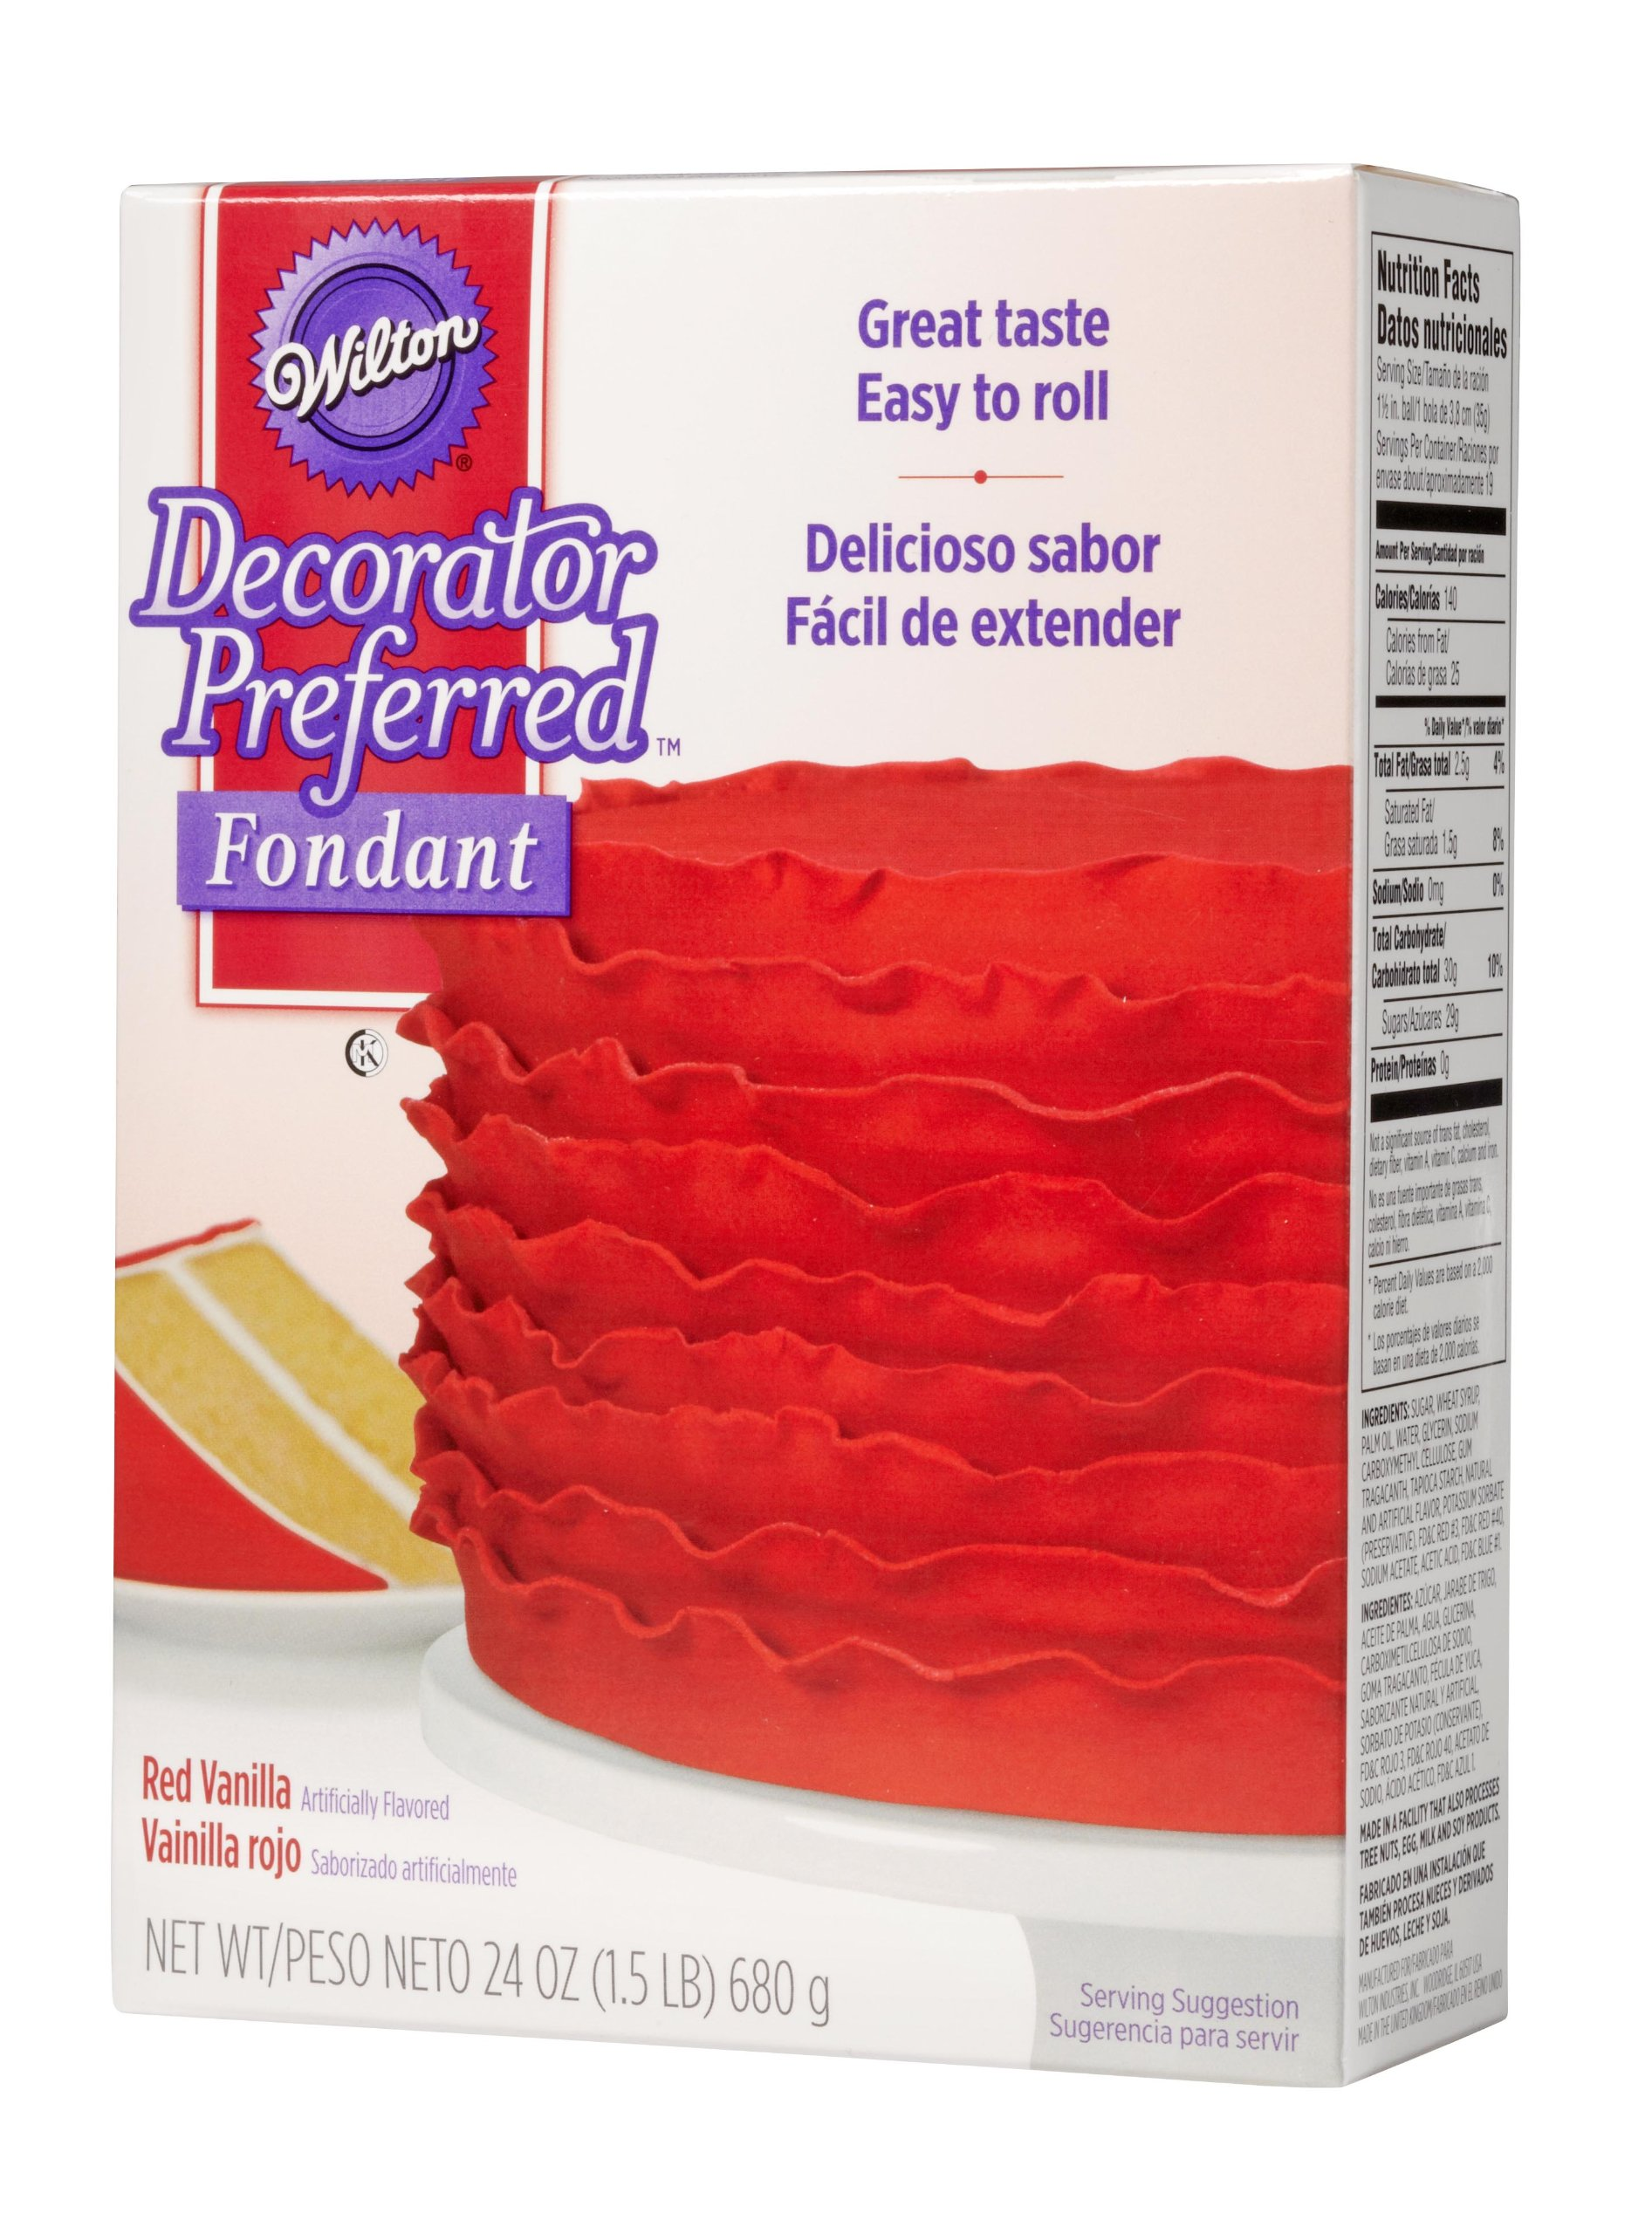 Wilton 710-2304 Decorator Preferred Fondant, 24-Ounce, Red